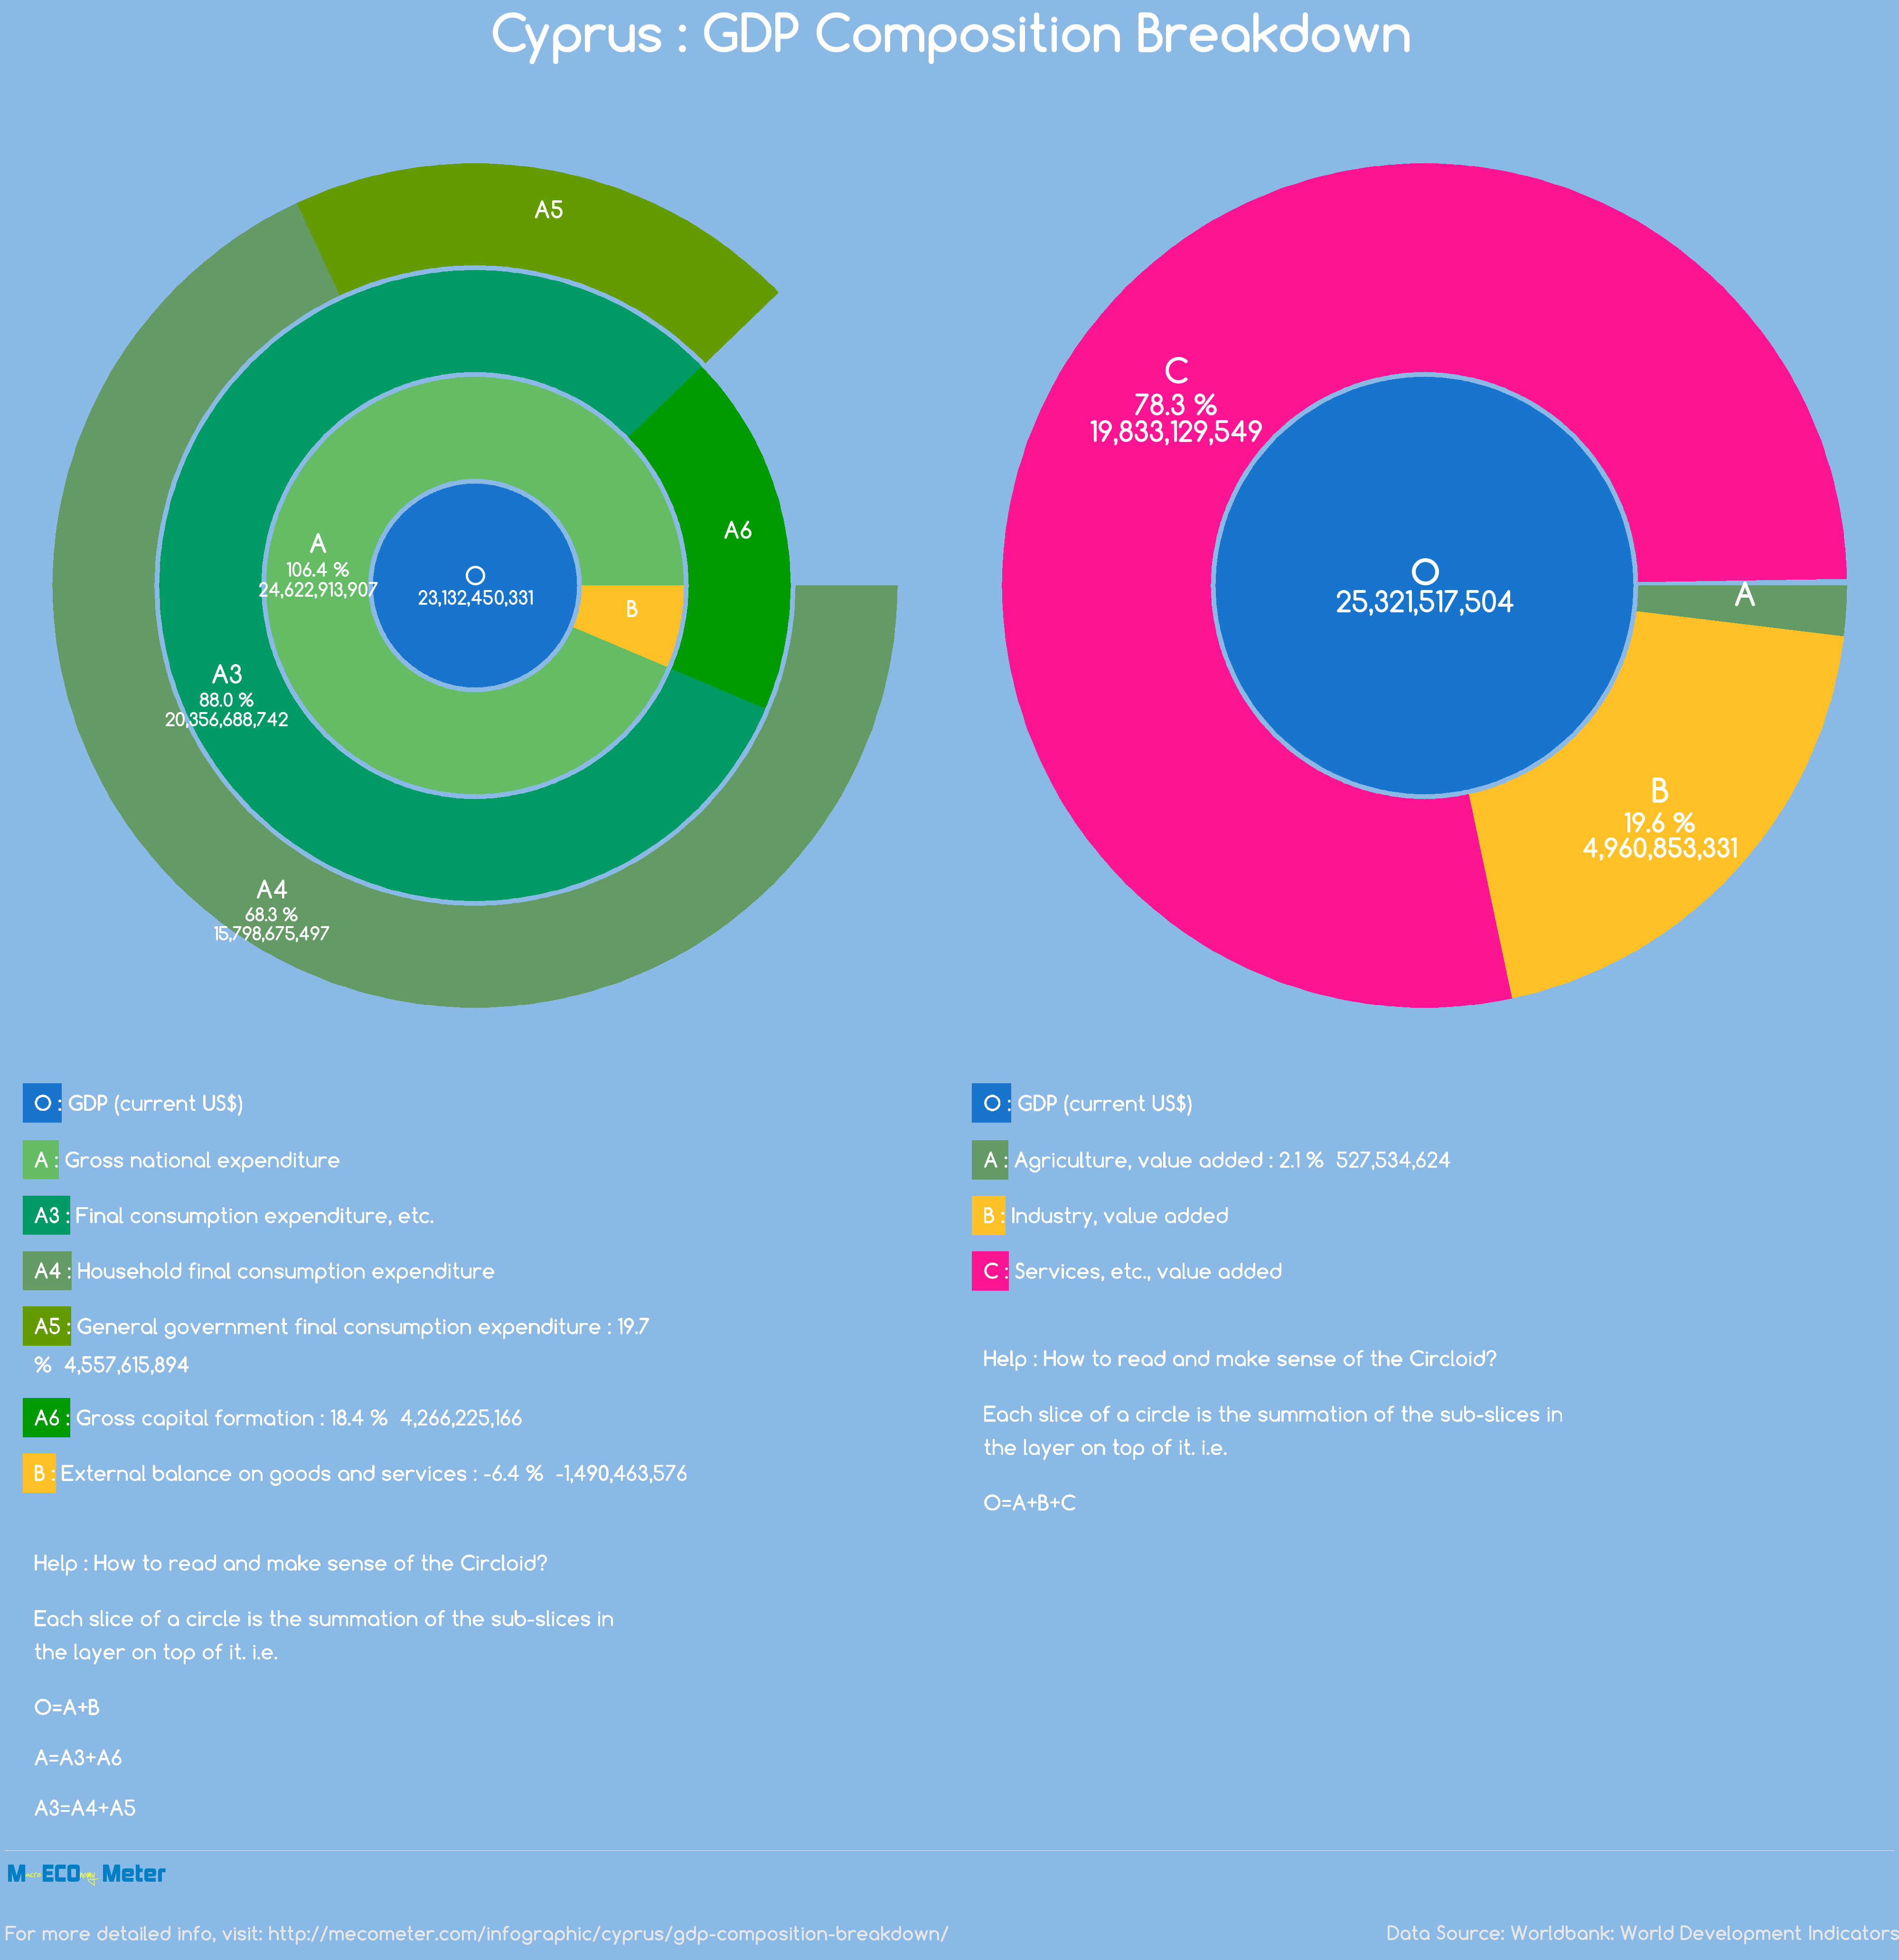 Cyprus : GDP Composition Breakdown